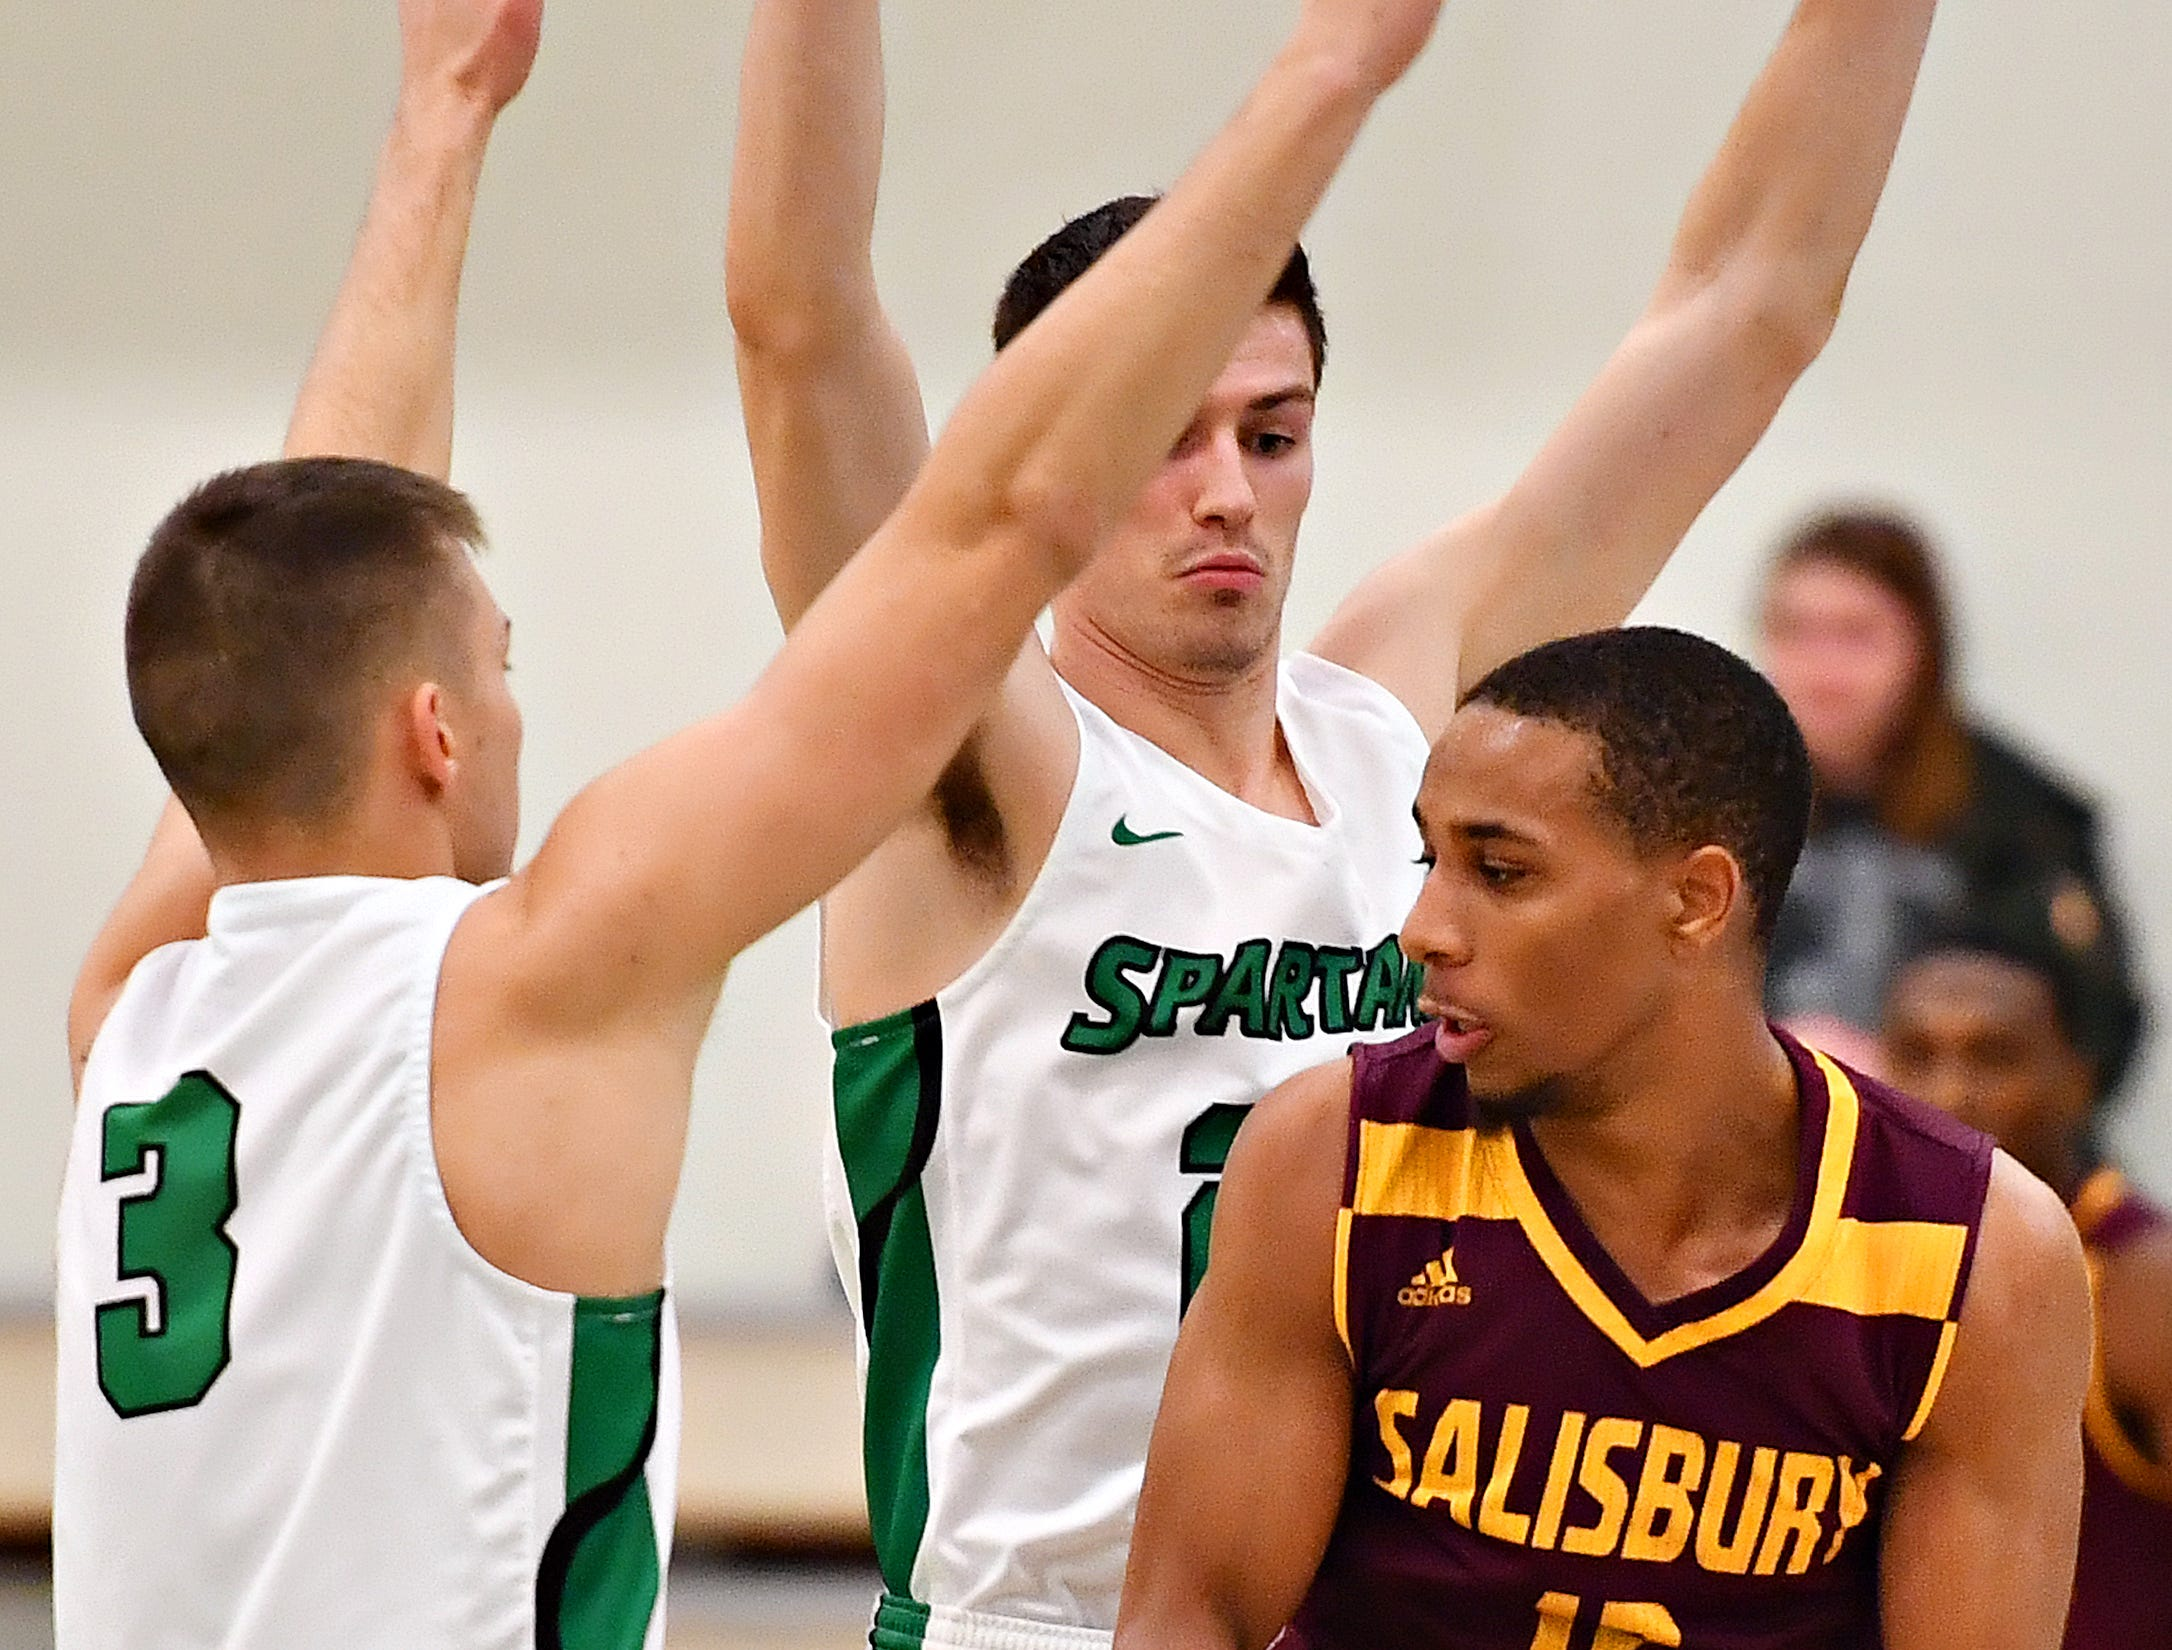 York College's Sean Kelly, left, and Darin Gordon, center, work to box in Salisbury's Mike Ward during men's basketball action at Grumbacher Sport and Fitness Center at York College of Pennsylvania in Spring Garden Township, Wednesday, Feb. 6, 2019. Dawn J. Sagert photo